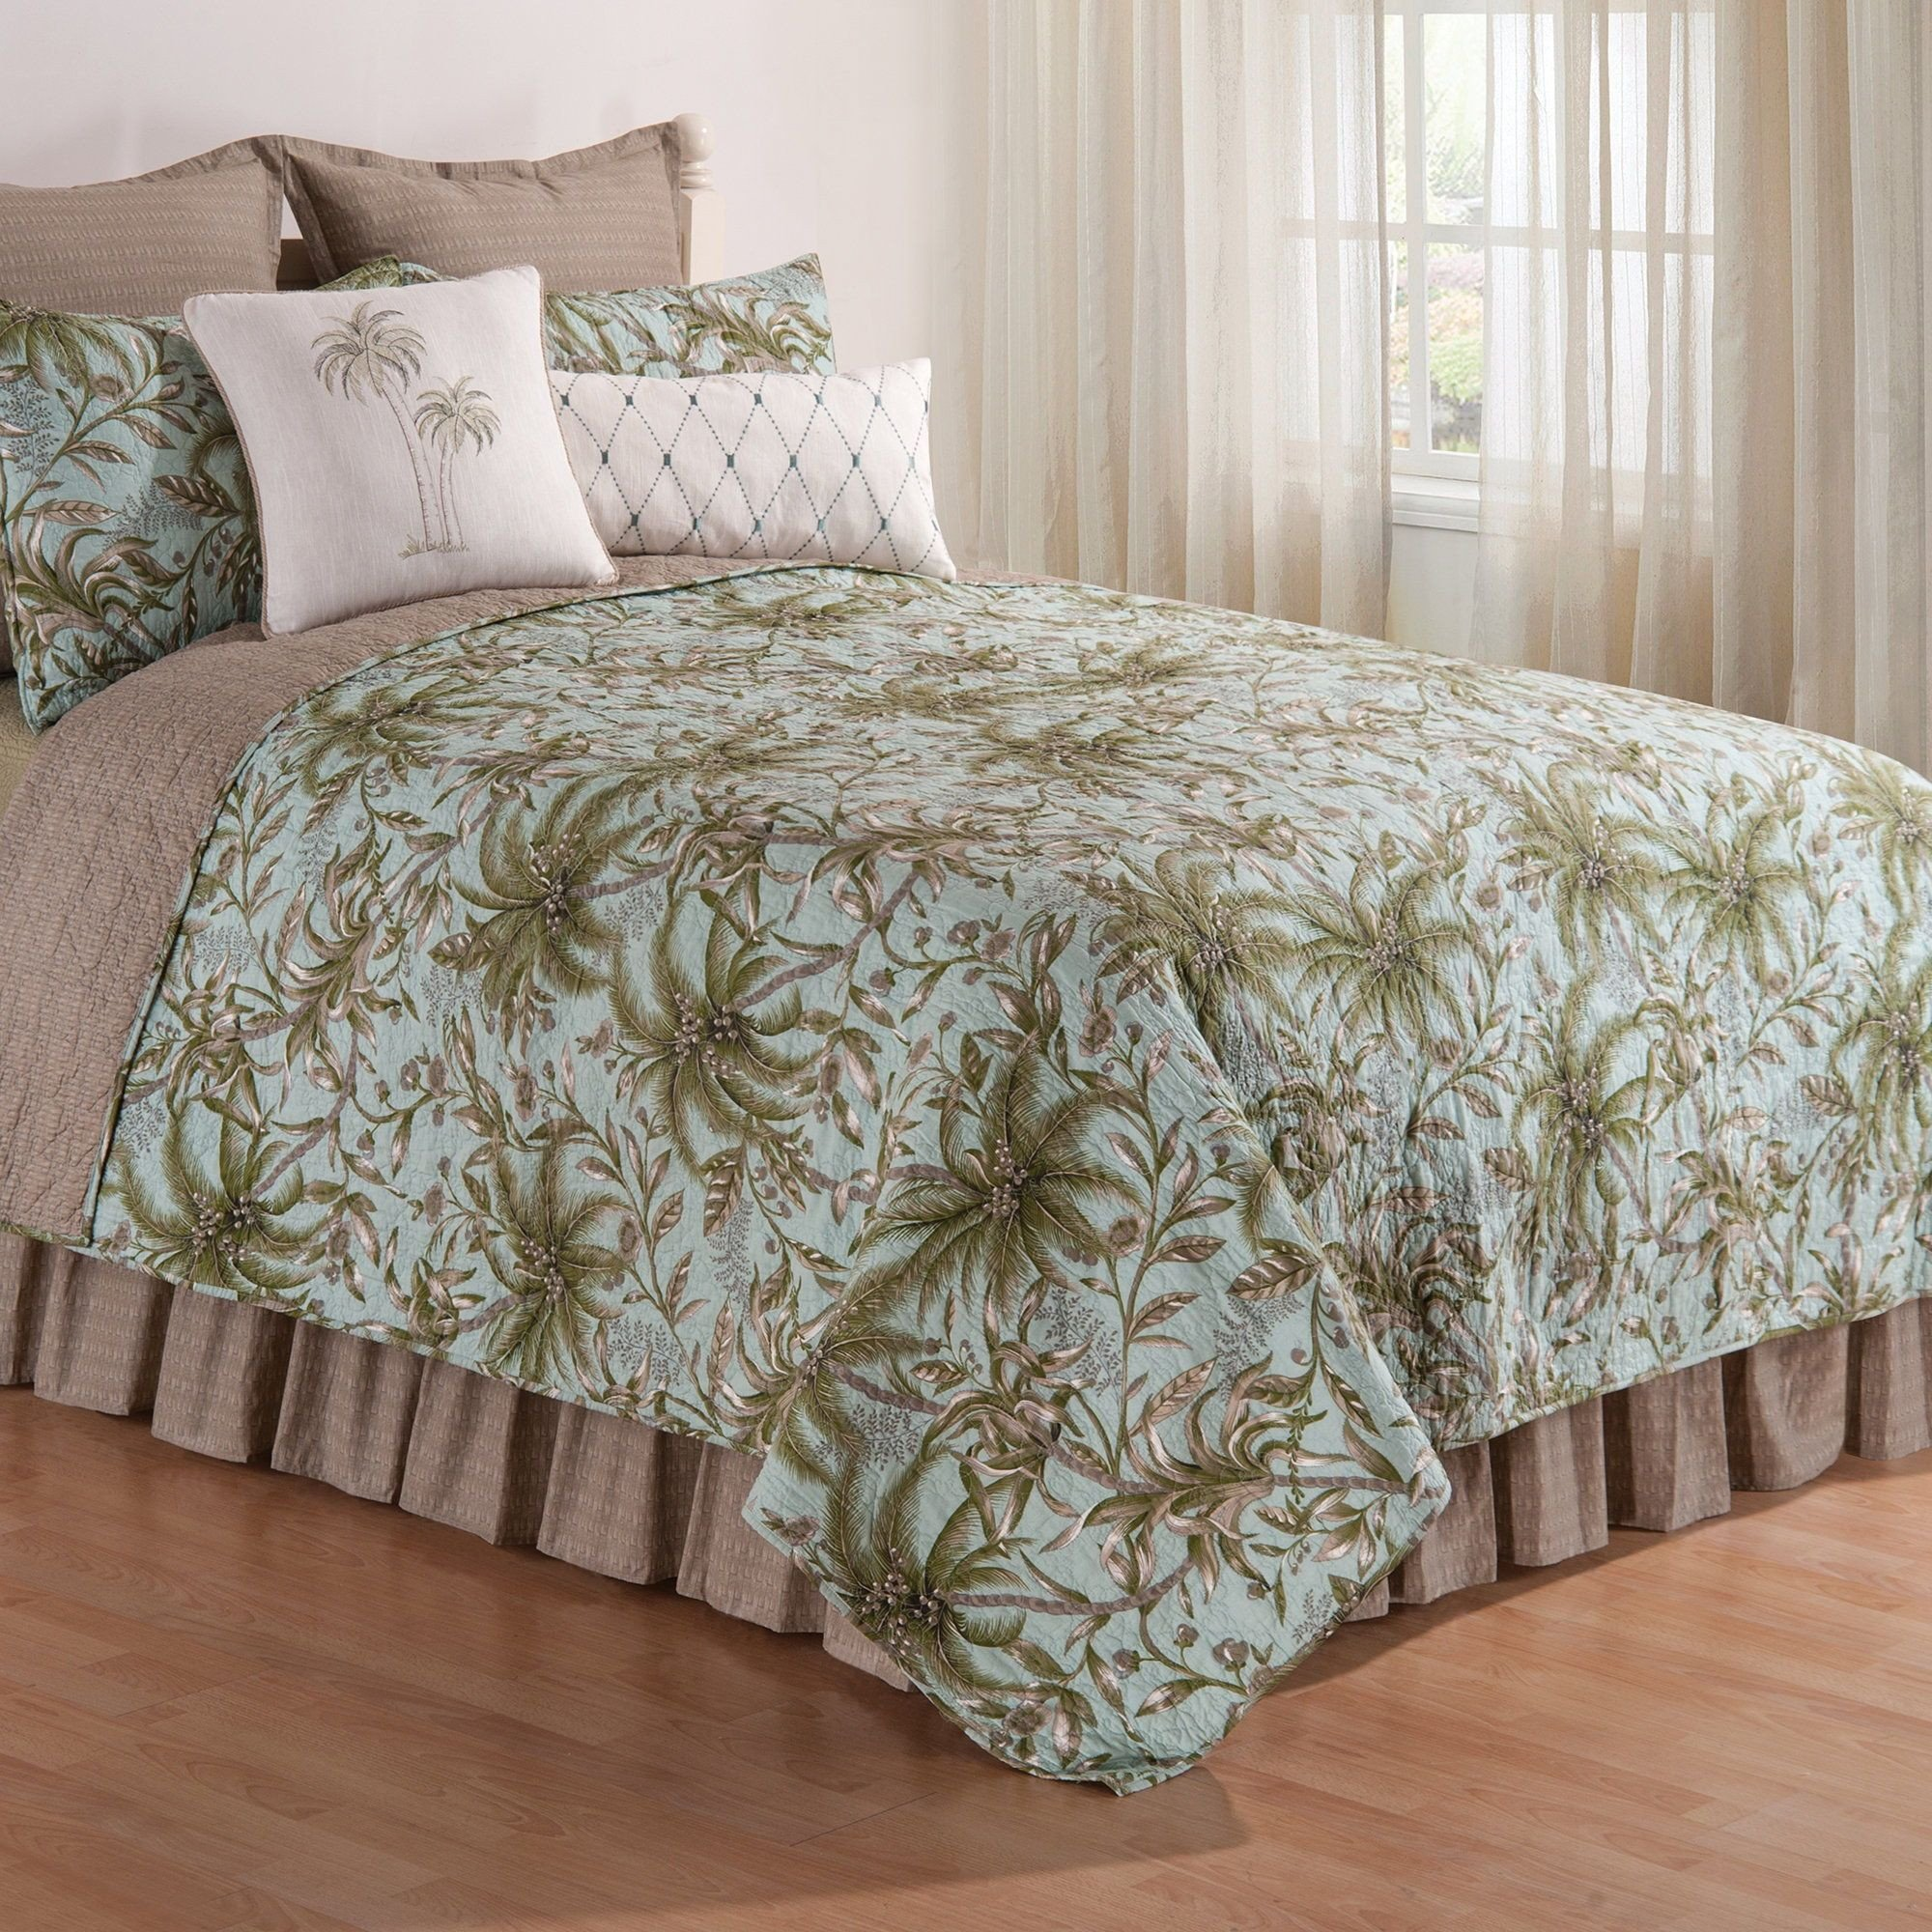 Beach themed Bedroom Furniture Awesome Coastal Bedding Sets and Beach Bedding Sets